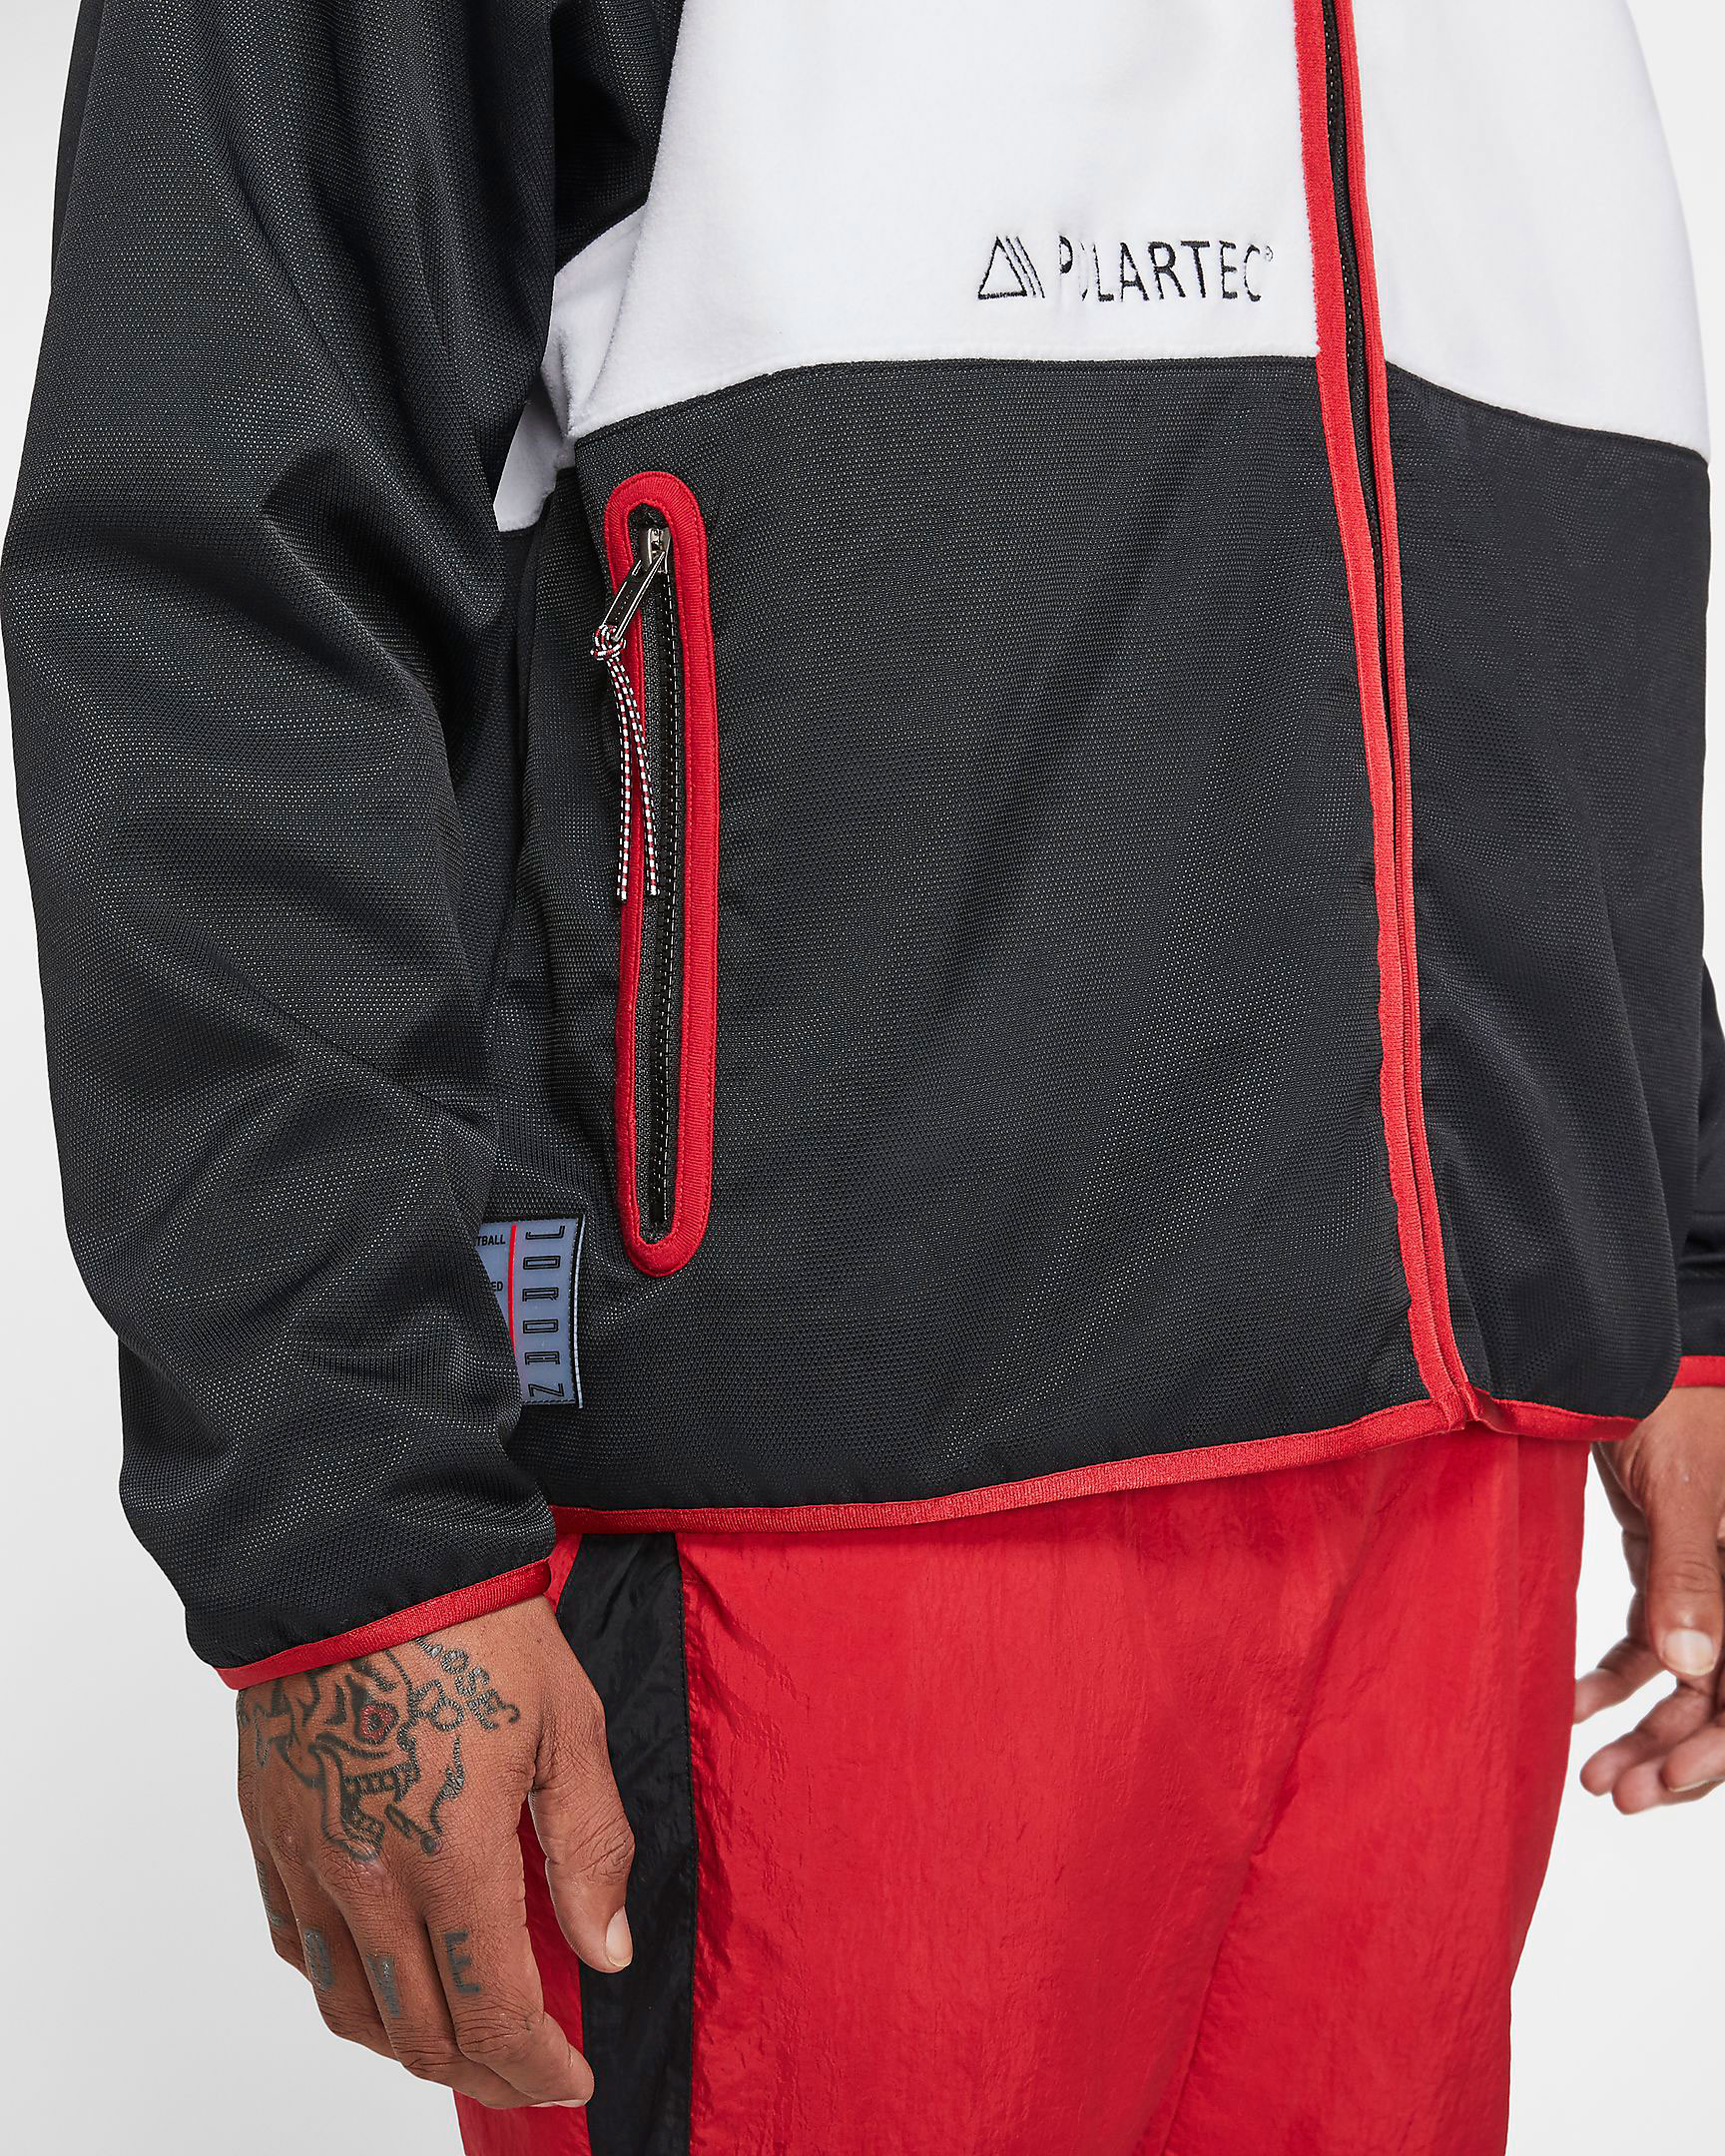 air-jordan-1-bred-polartec-fleece-jacket-4